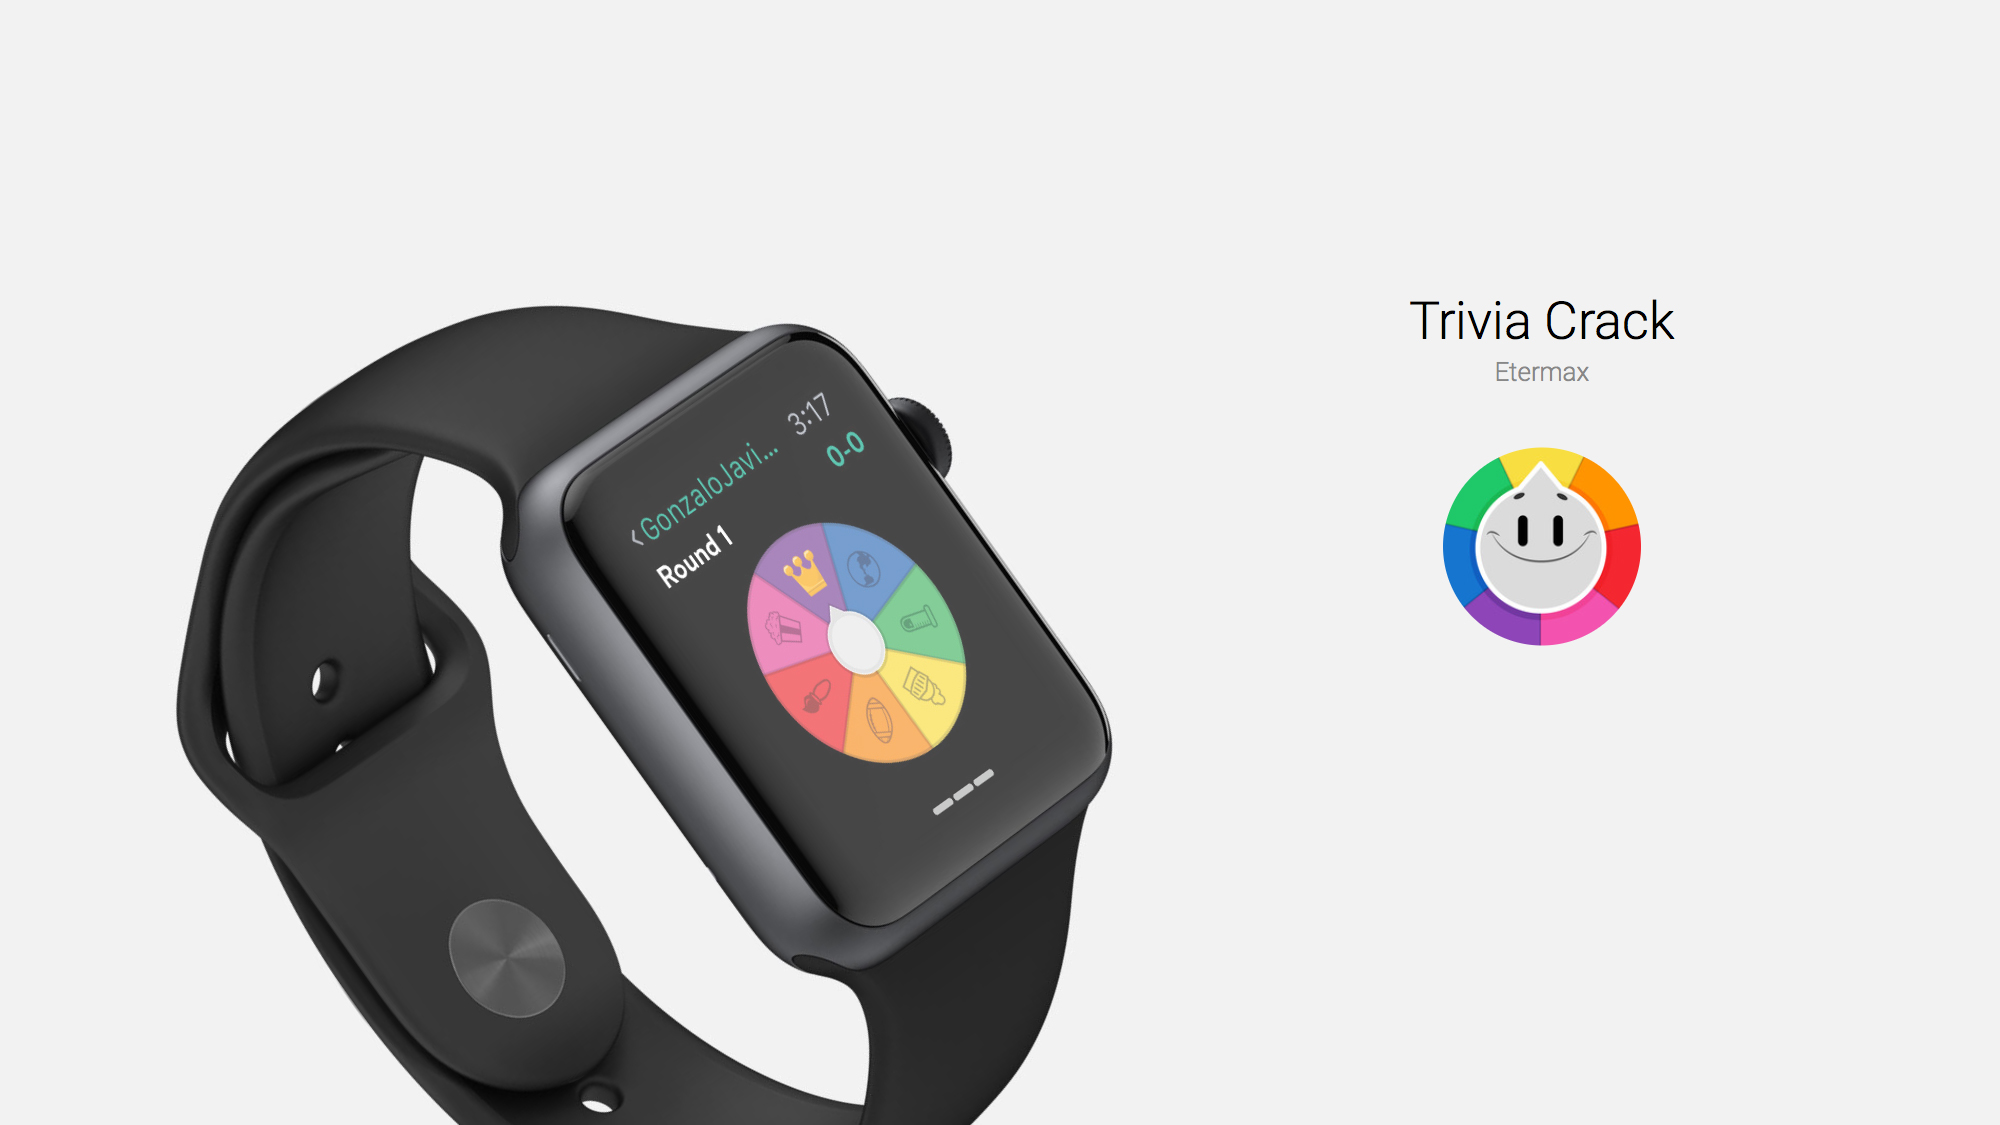 It's now even easier to play Trivia Crack from your Apple Watch